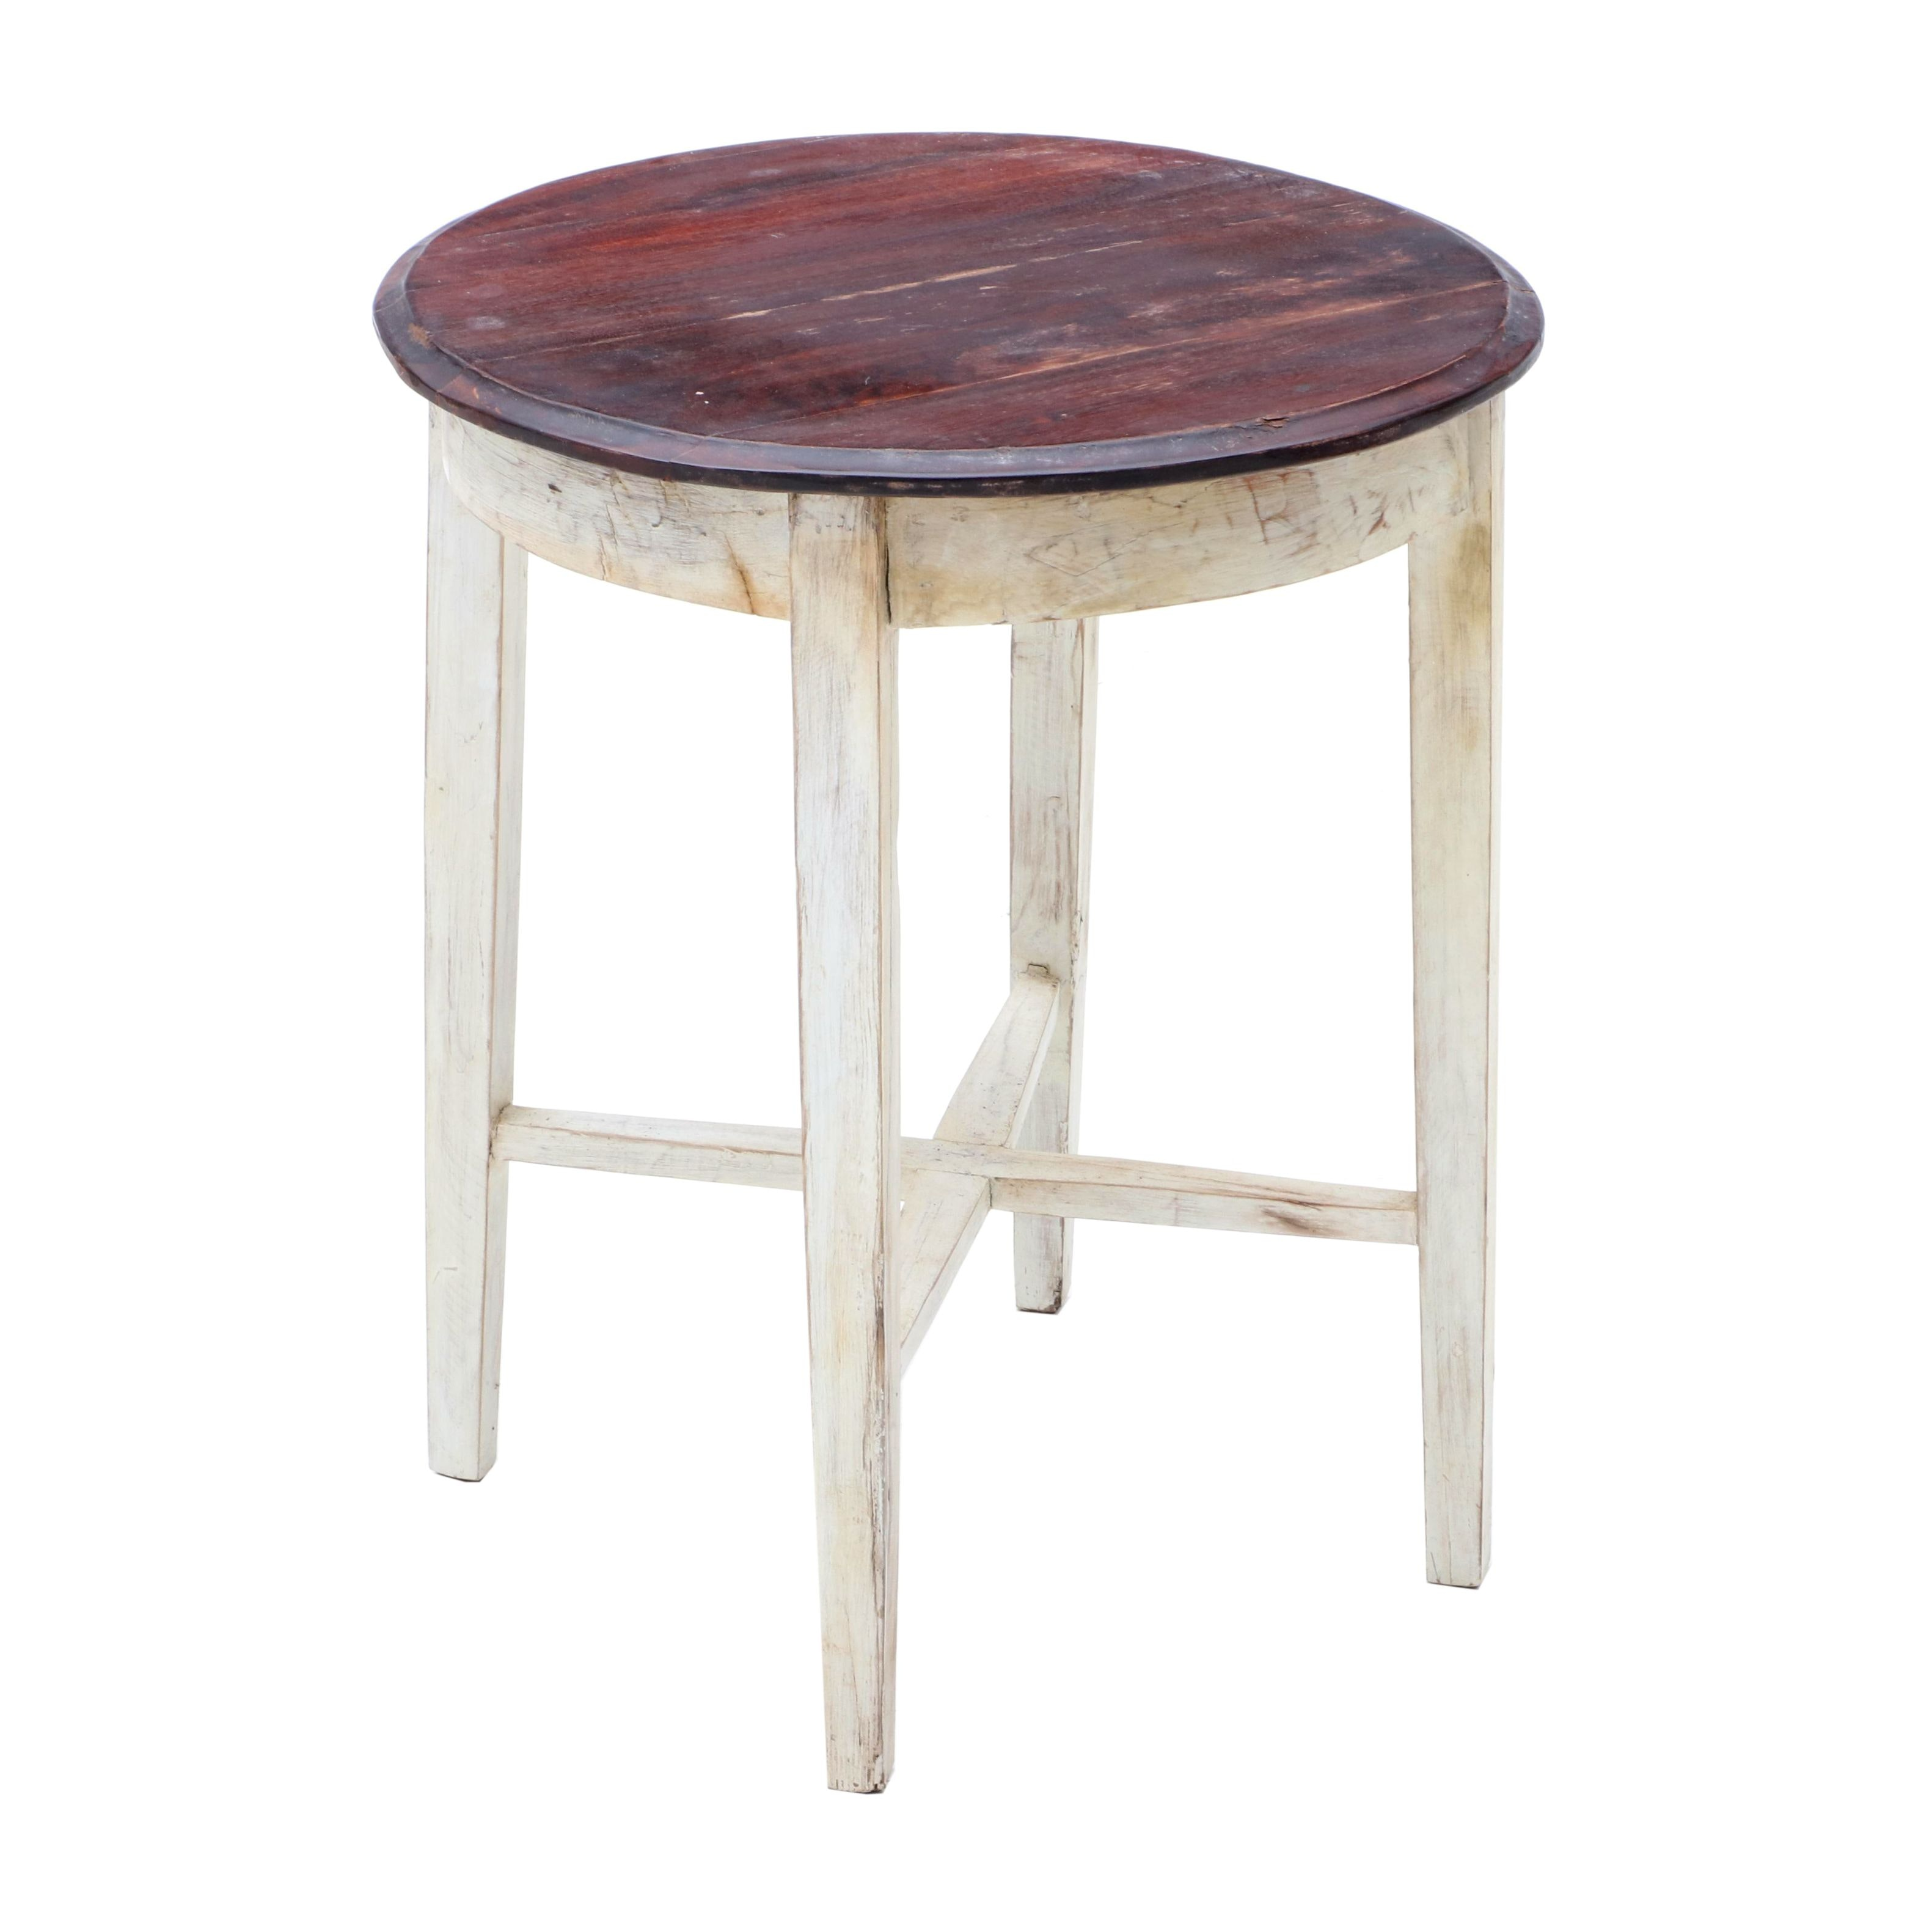 Rustic Style Accent Table